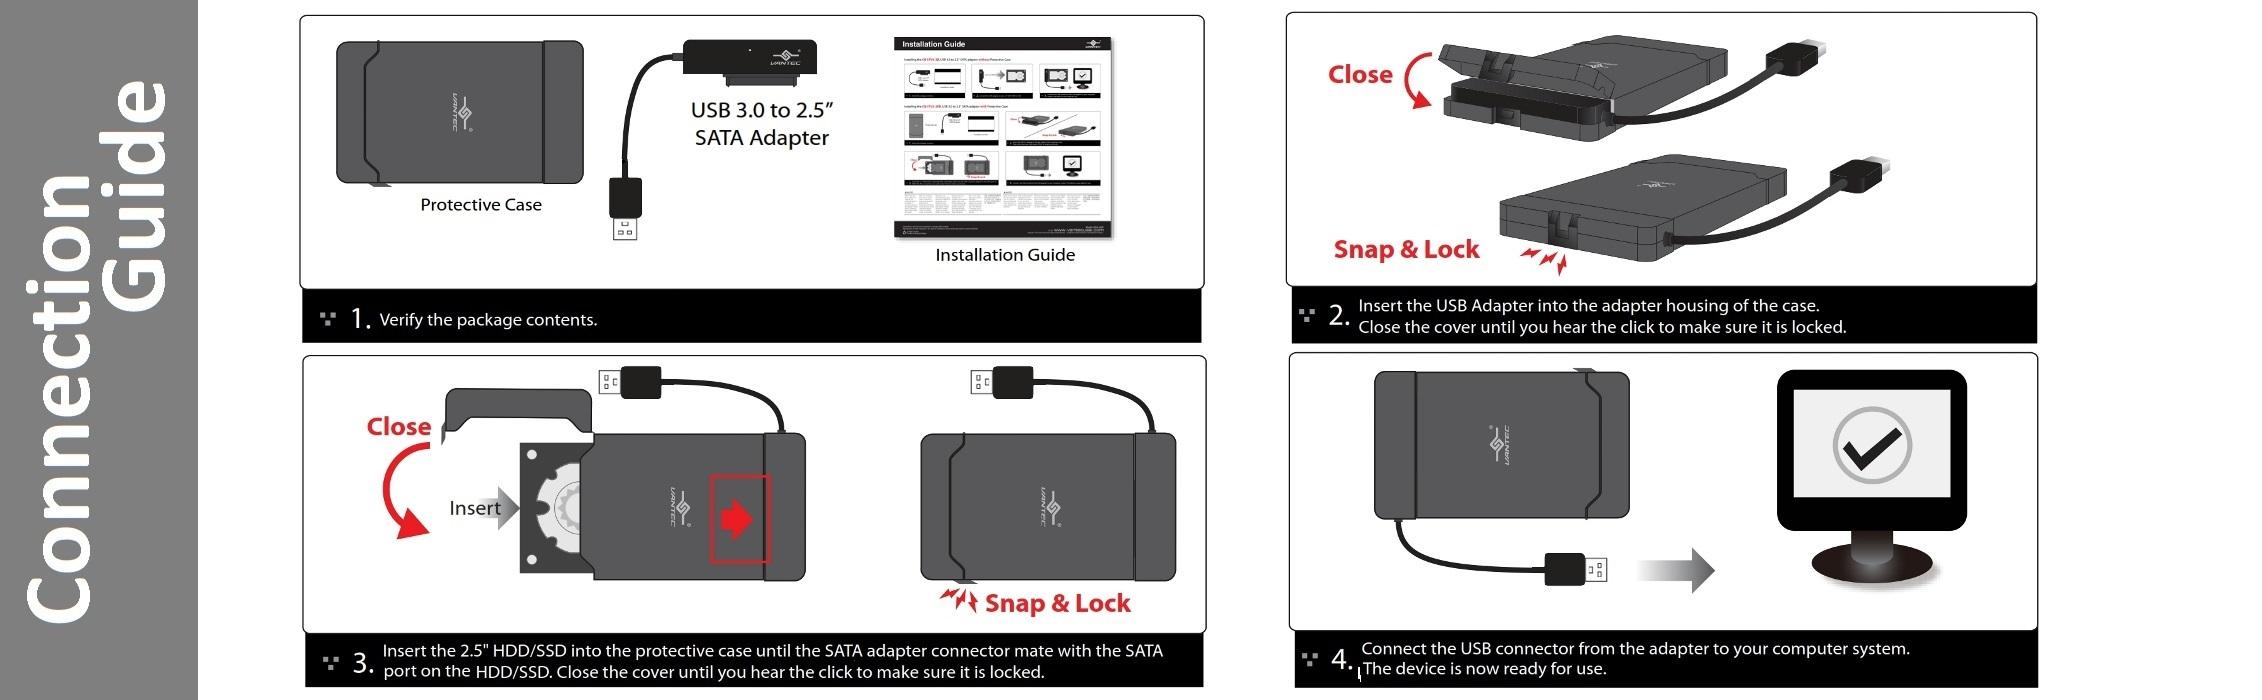 Sata To Usb Adapter Wiring Diagram Trusted Diagrams Amazon Com Vantec 3 0 2 5 Hdd With Case Cb Hard Drive